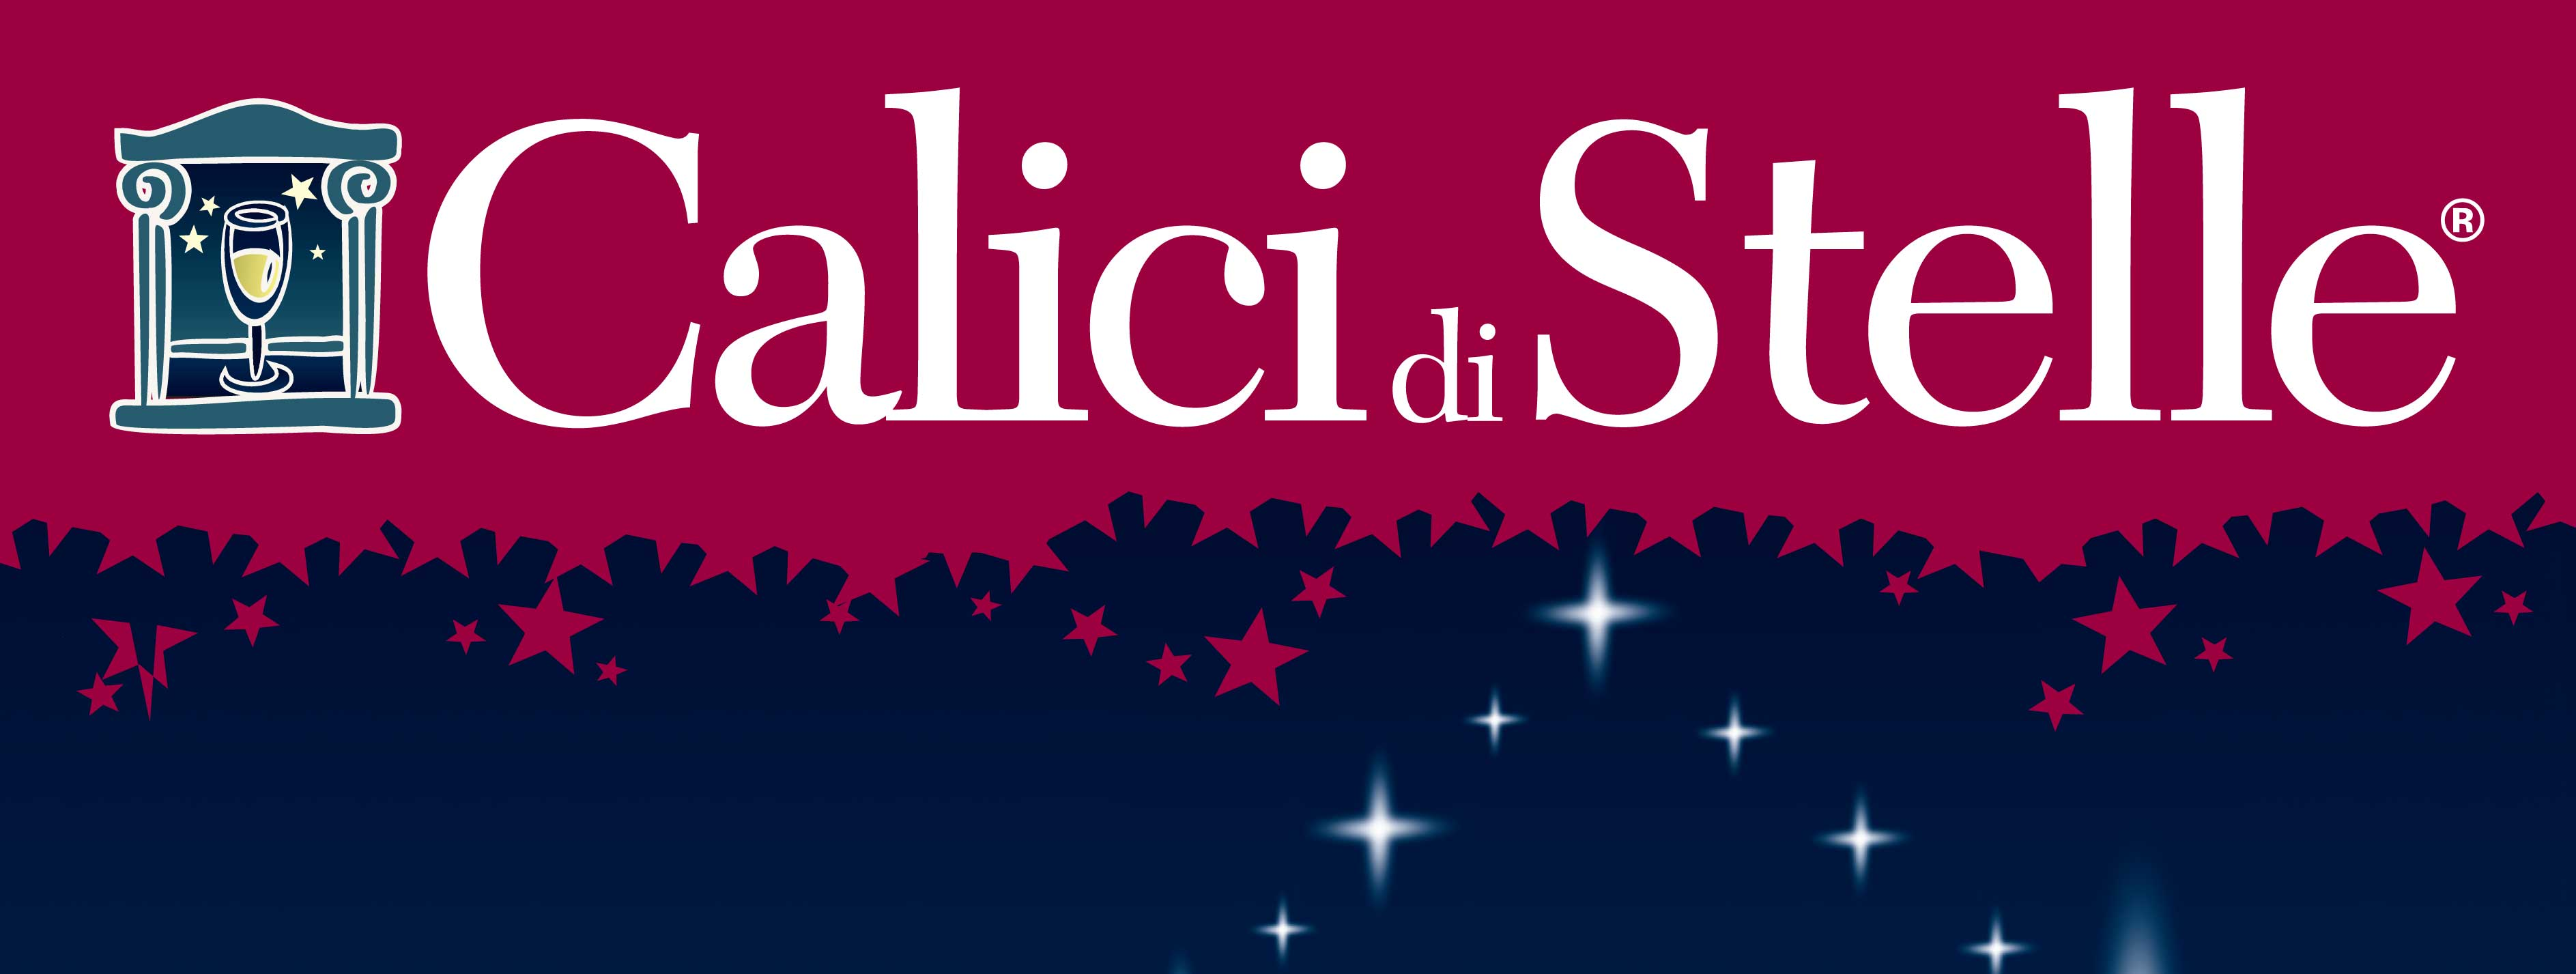 Calici di Stelle 2017 in Umbria